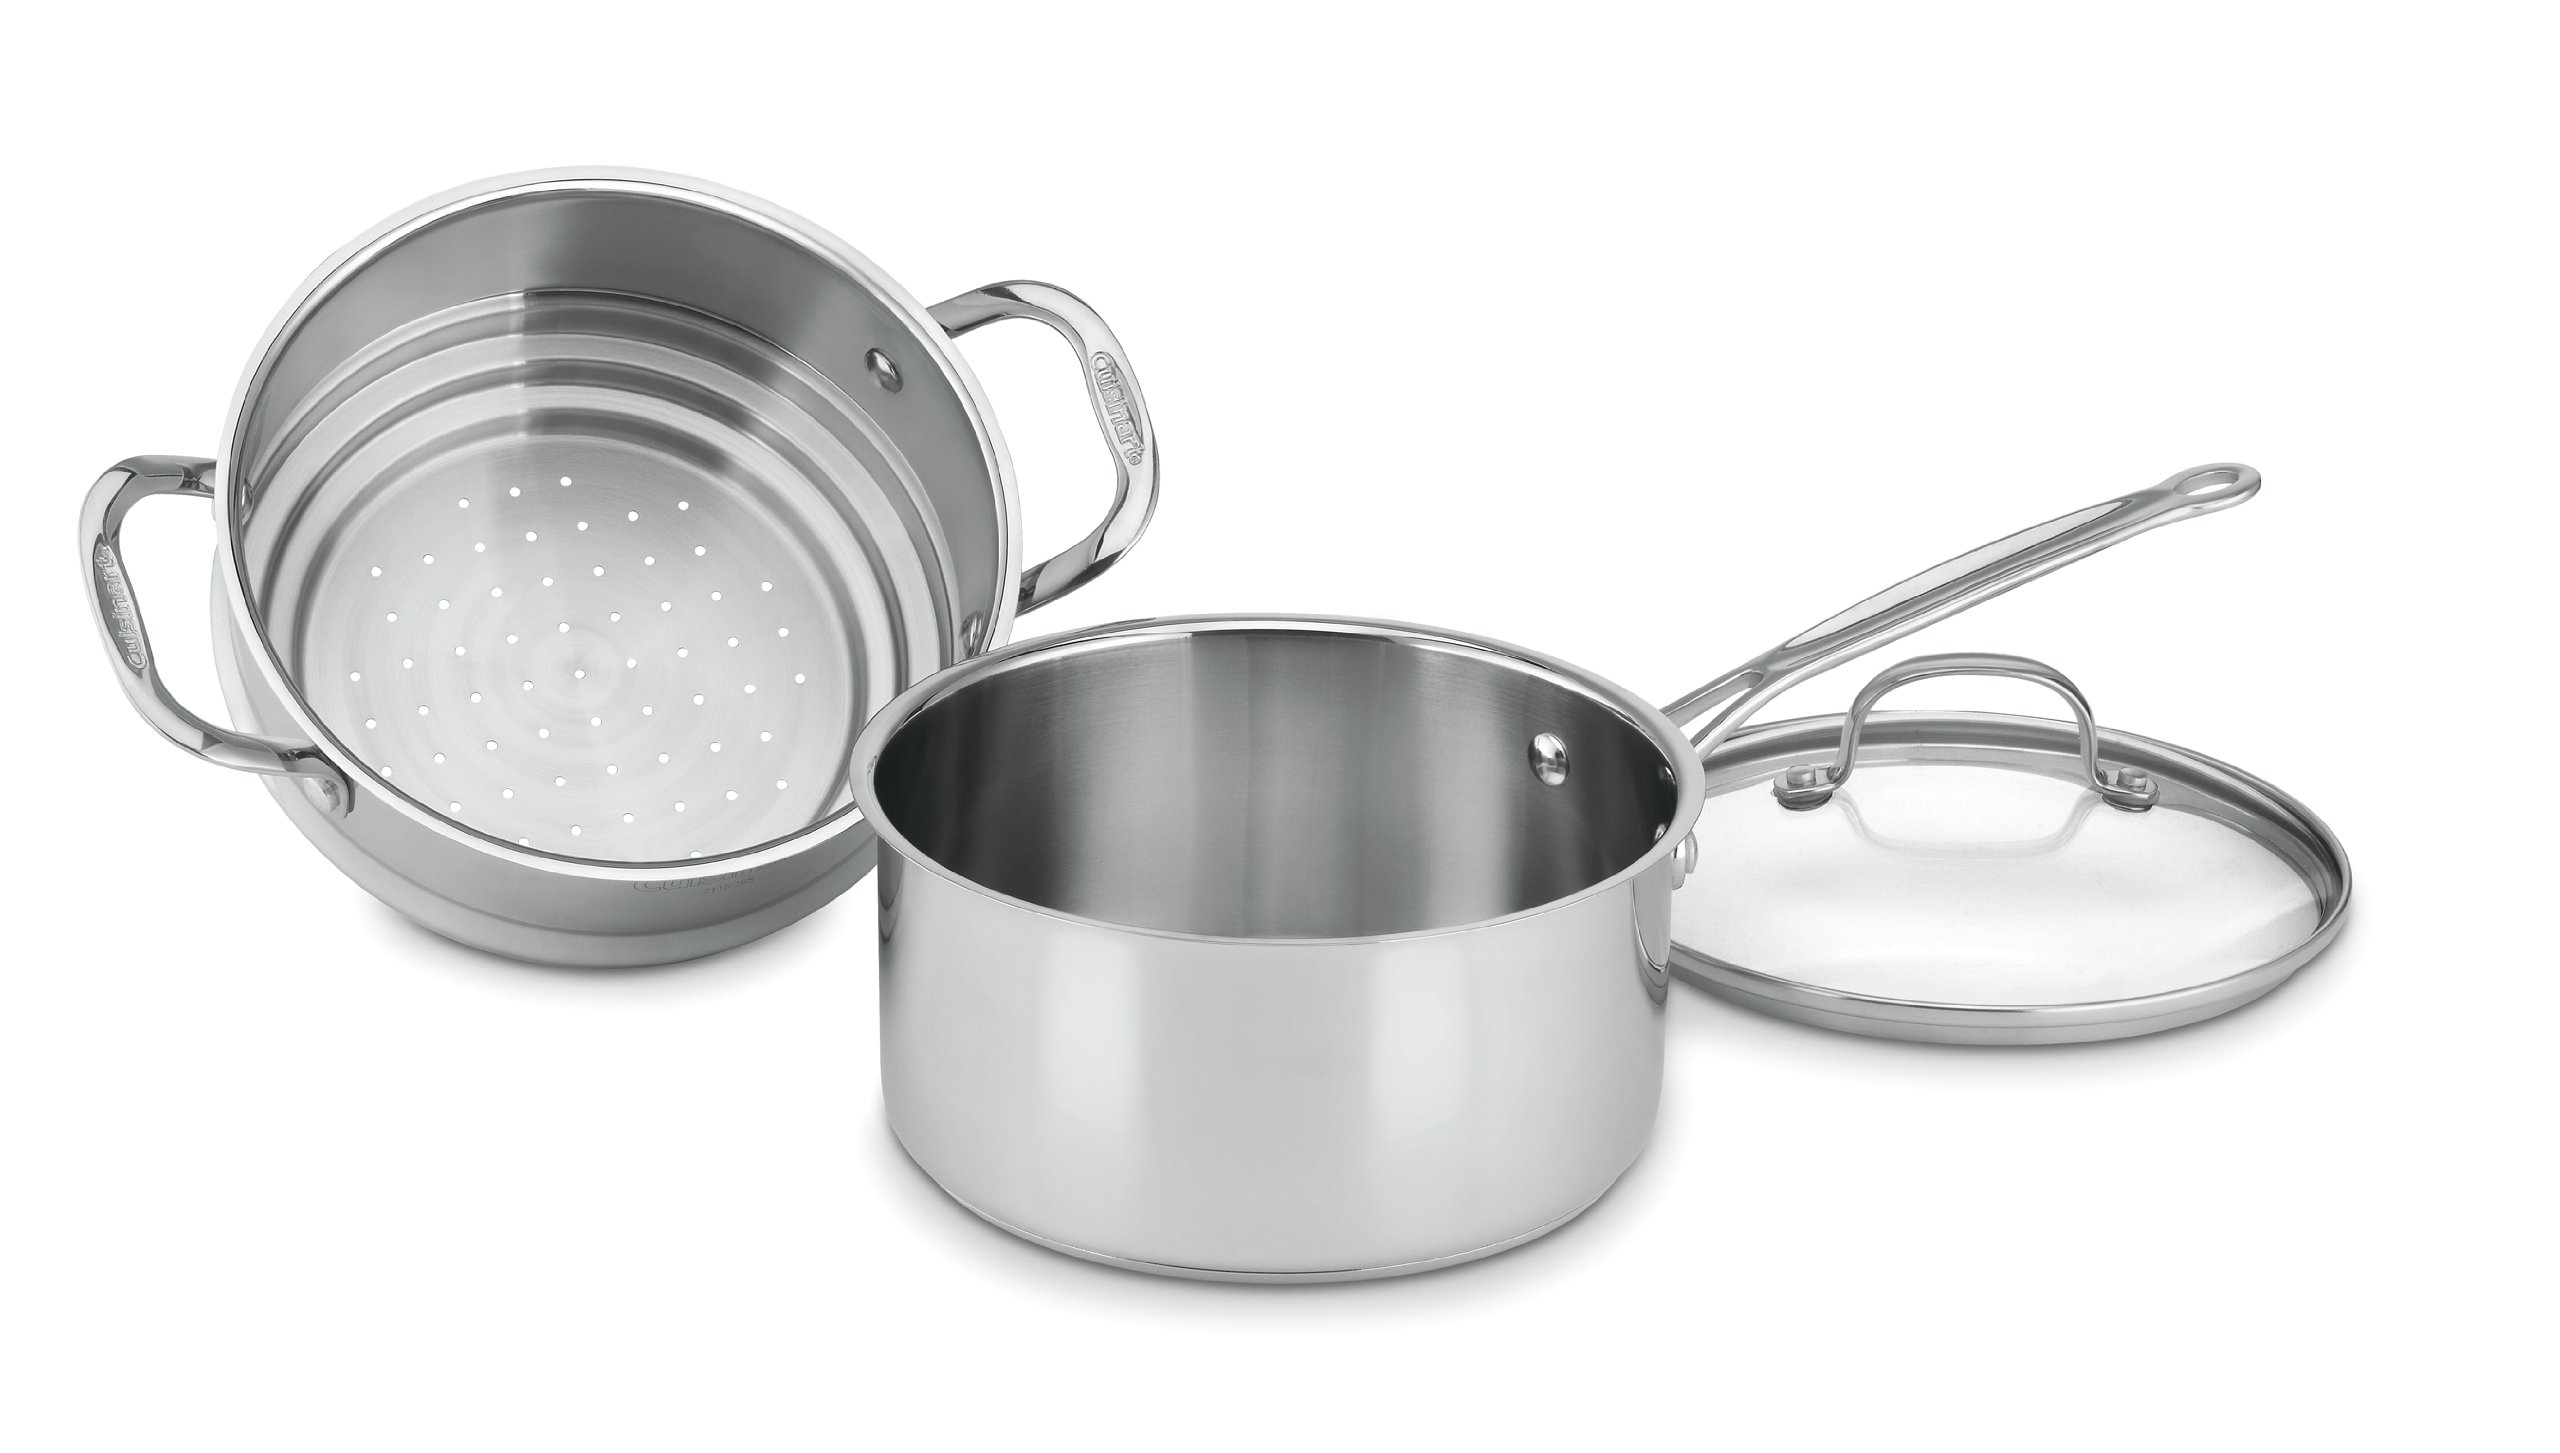 Cuisinart 77-35CG Chef's Classic Stainless 3-Piece 3-Quart Steamer Set by Cuisinart